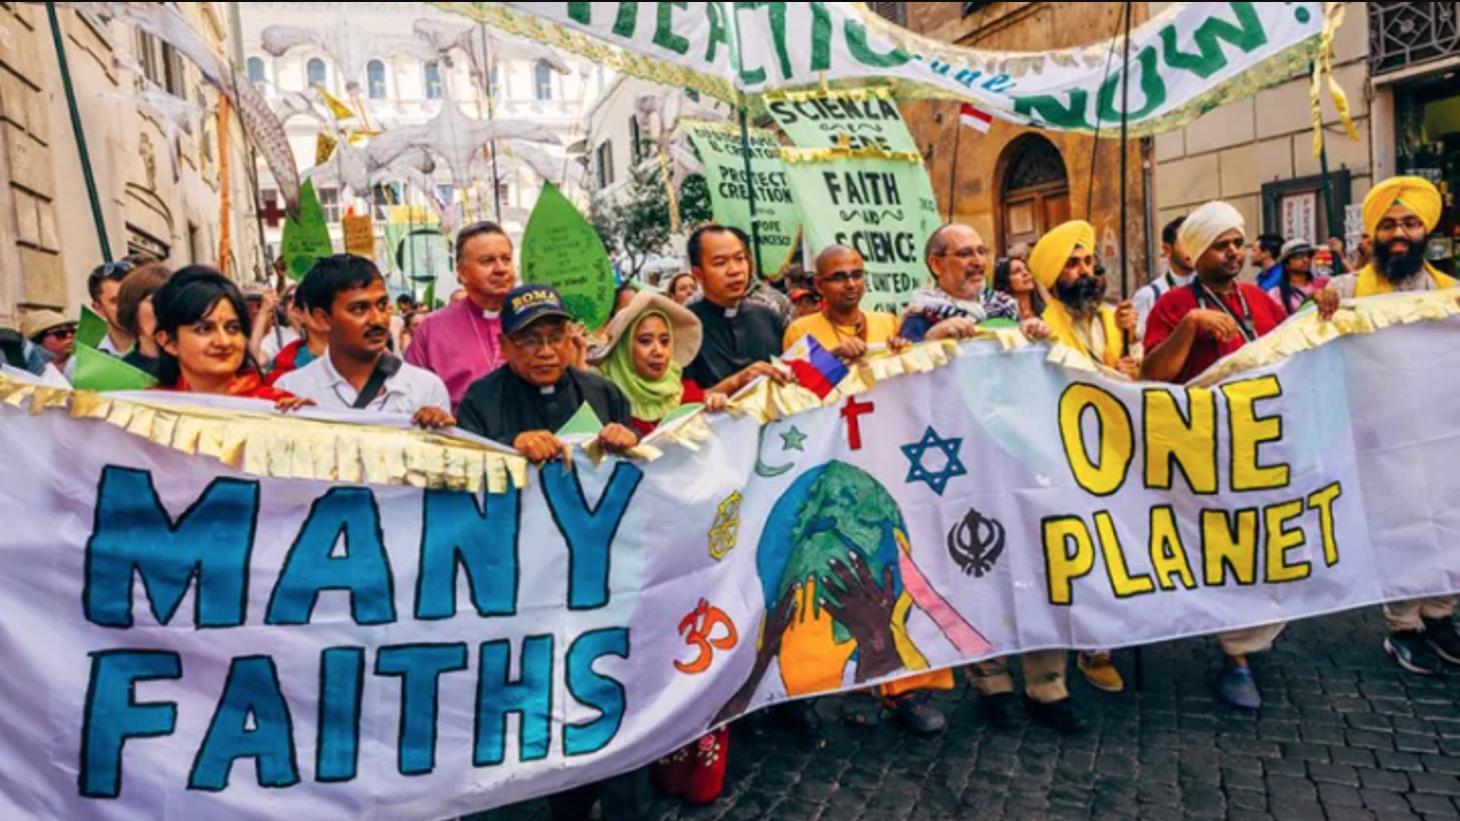 A climate change march with interfaith participants in Vatican City in 2015.